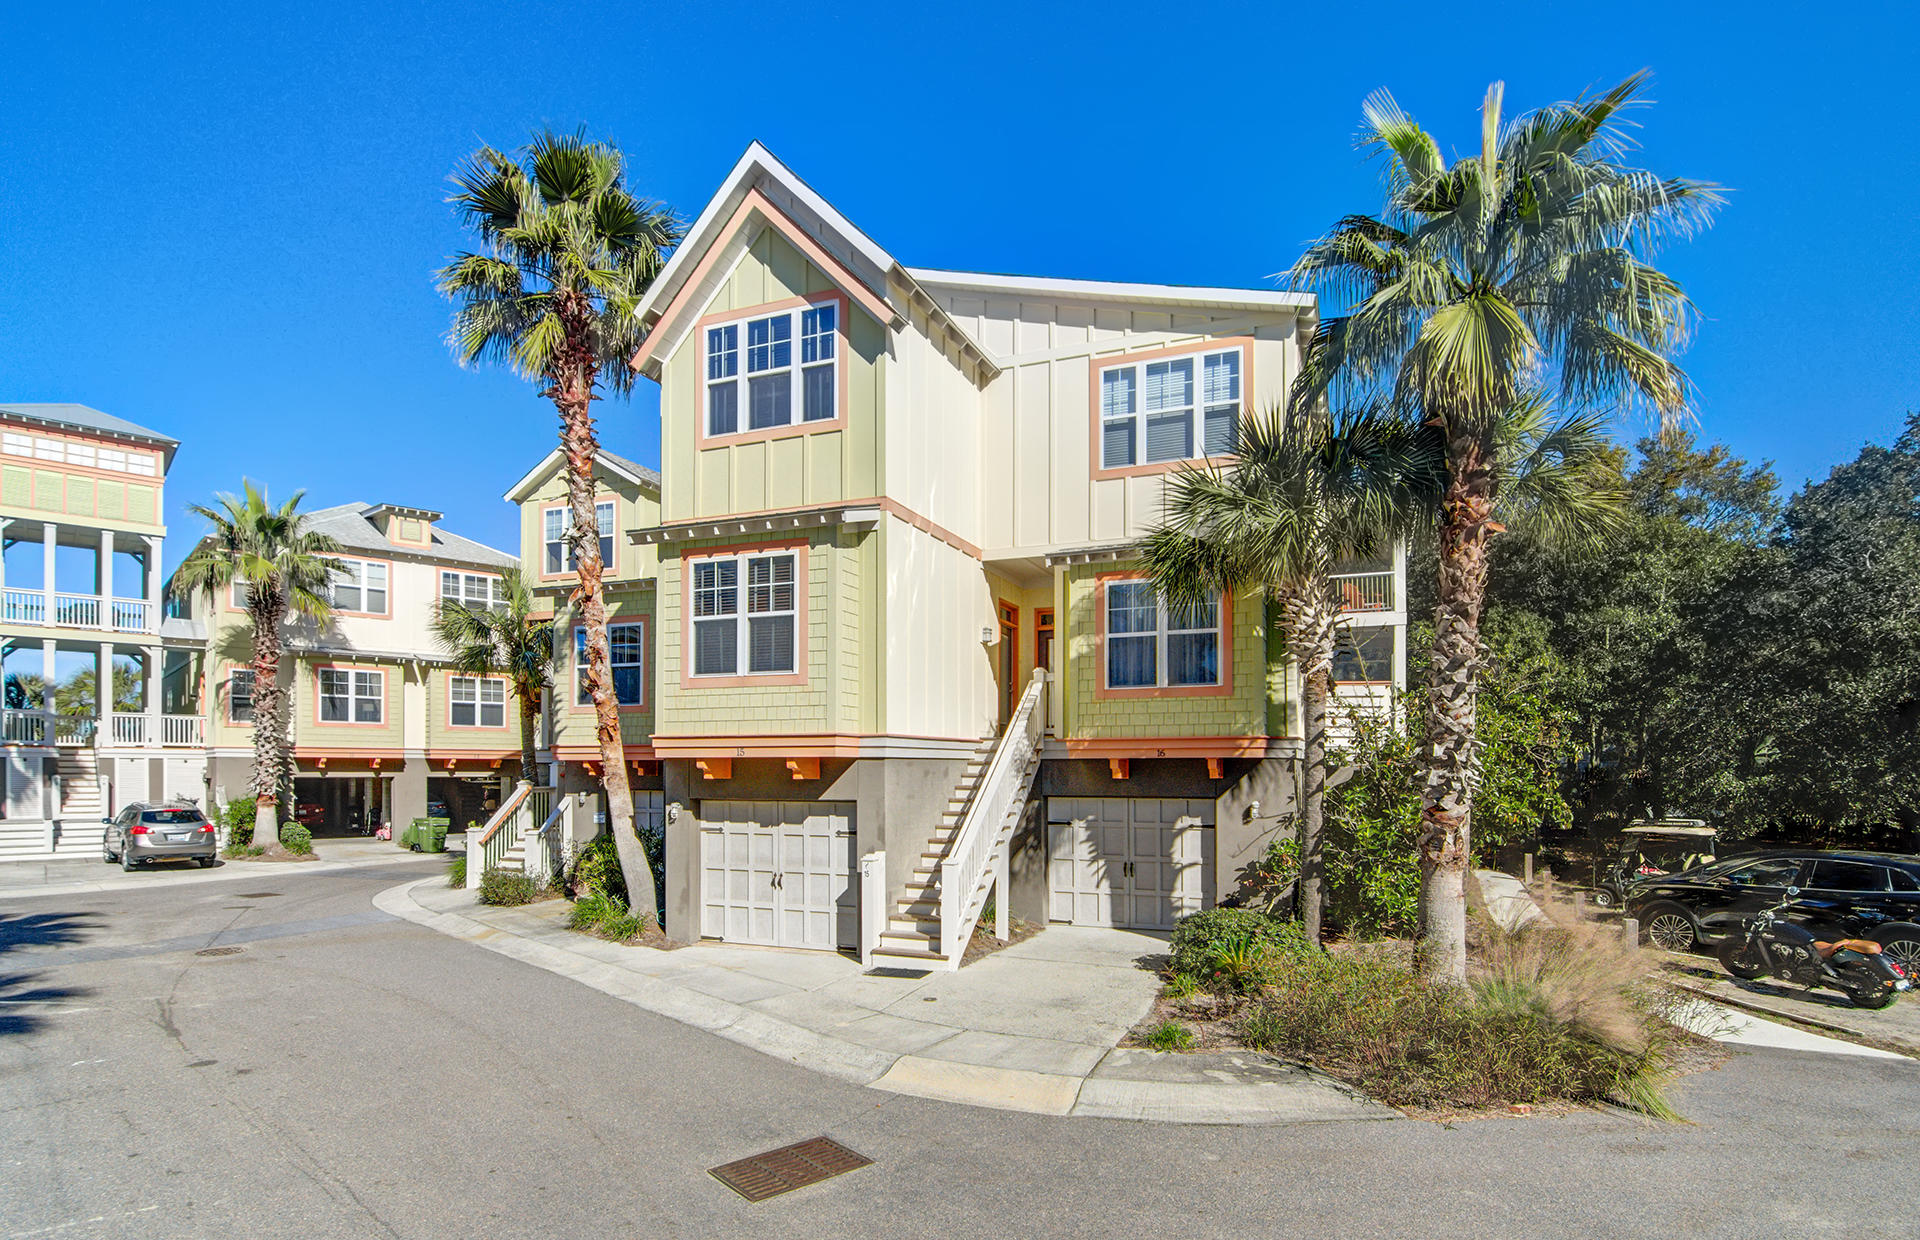 Back Bay at Folly Homes For Sale - 204 Michigan, Folly Beach, SC - 0